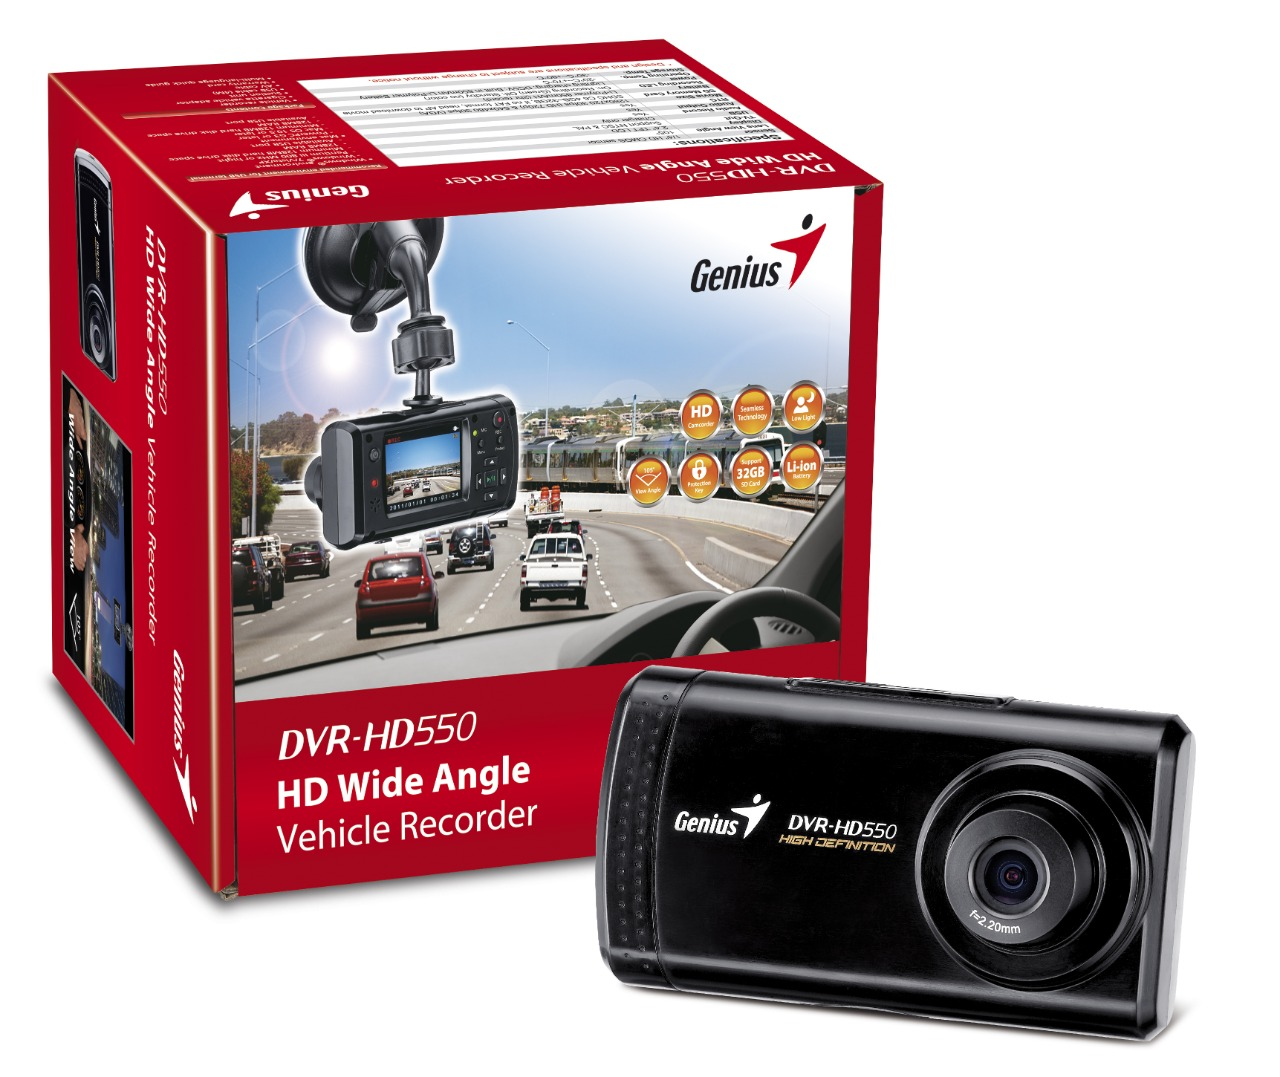 WHOLESALE VEHICLE RECORDER : DVR HD550_3